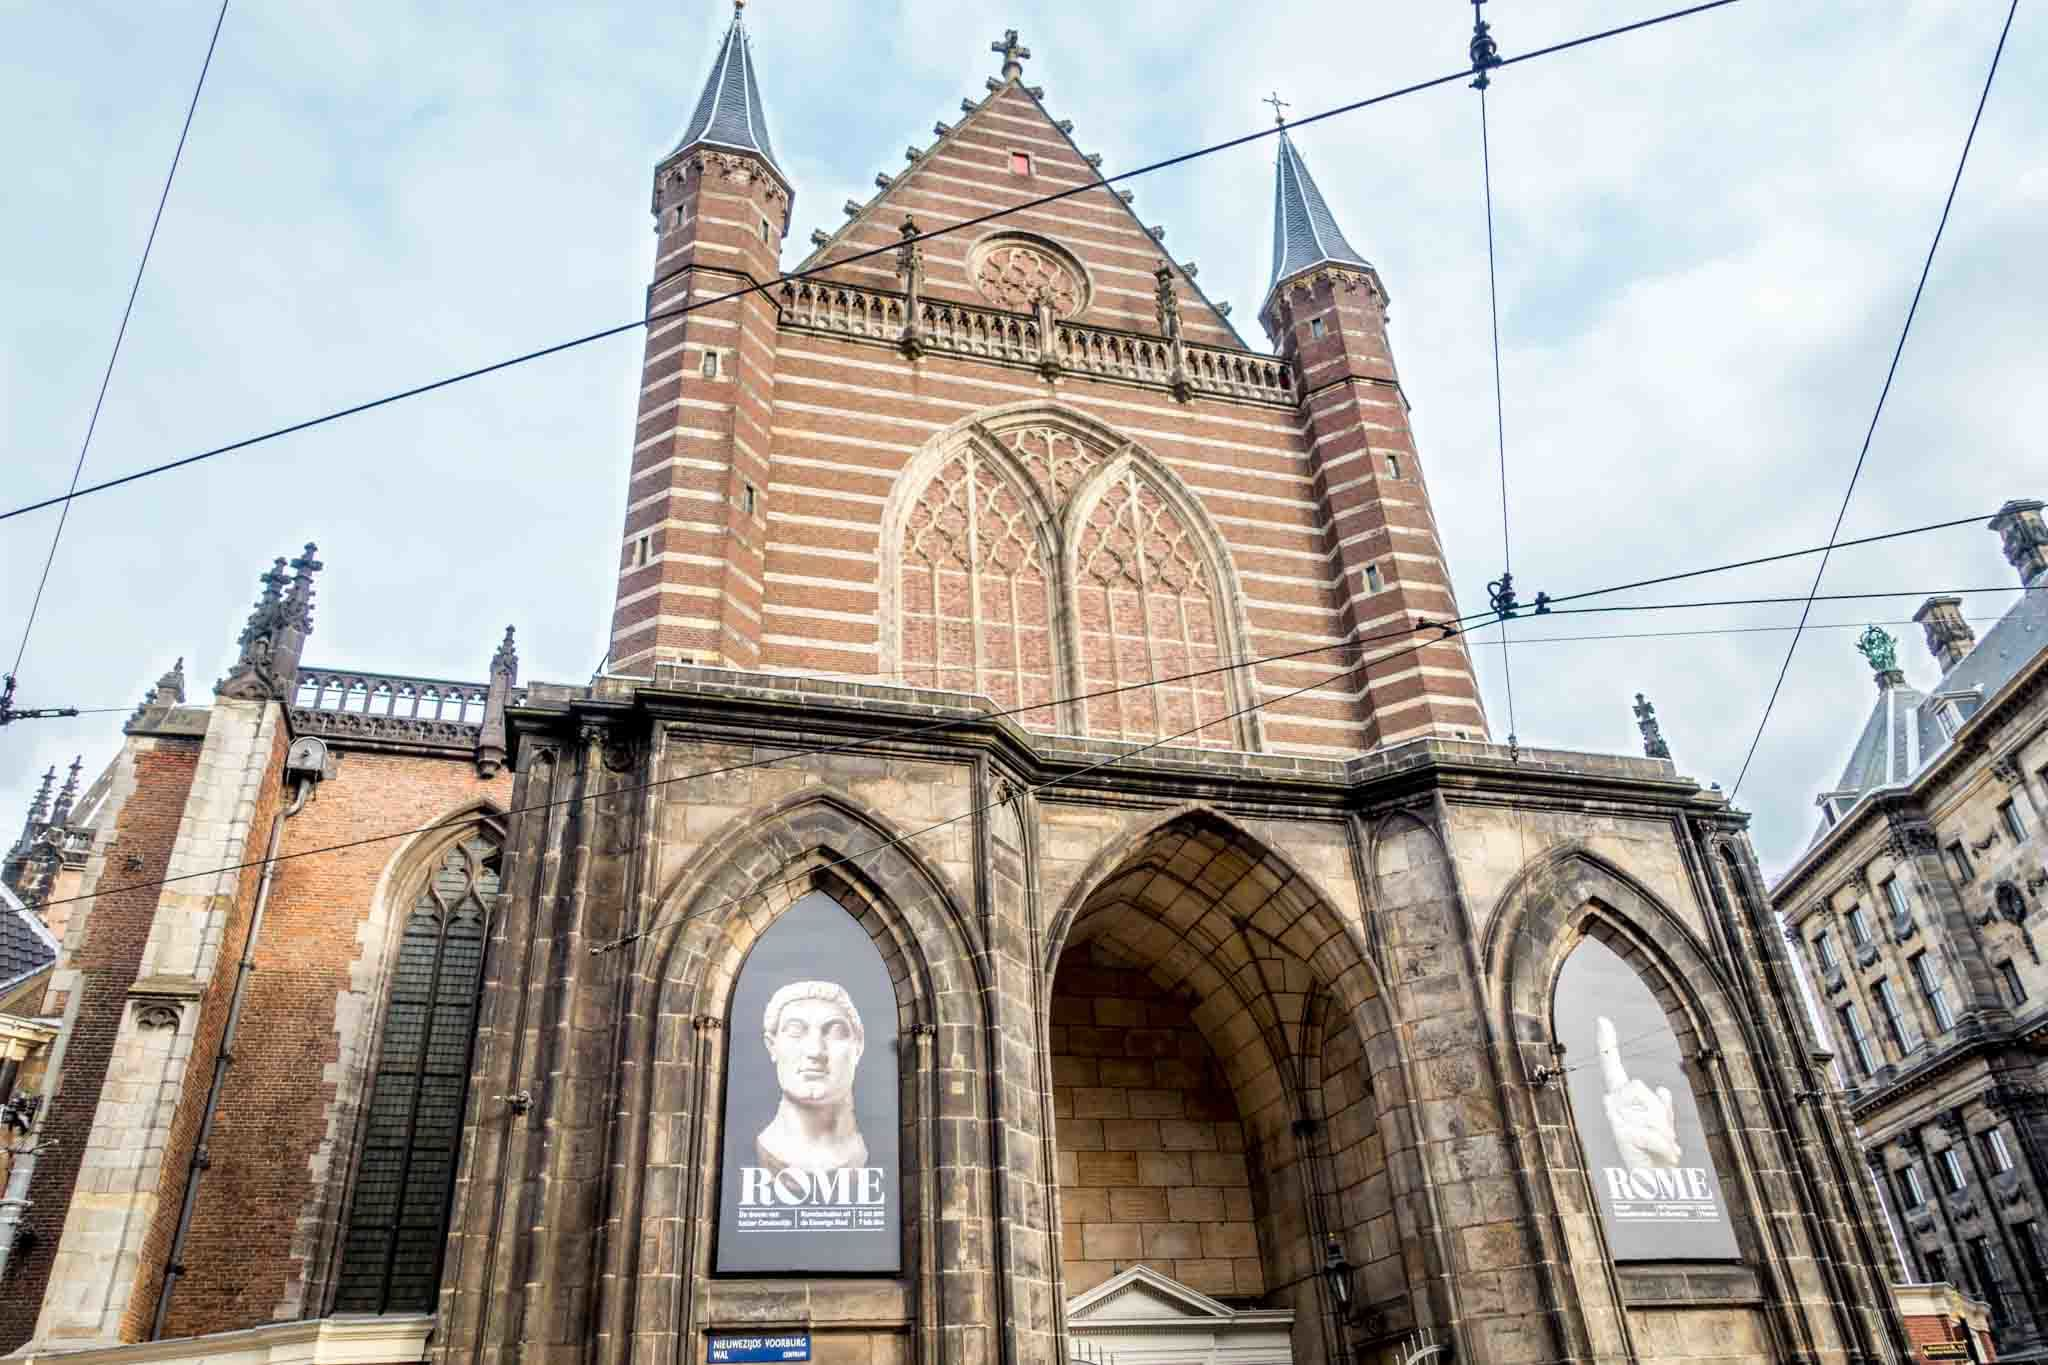 Exterior of Nieuwe Kerk. Seeing the exhibits inside is one of the cool things to do in Amsterdam